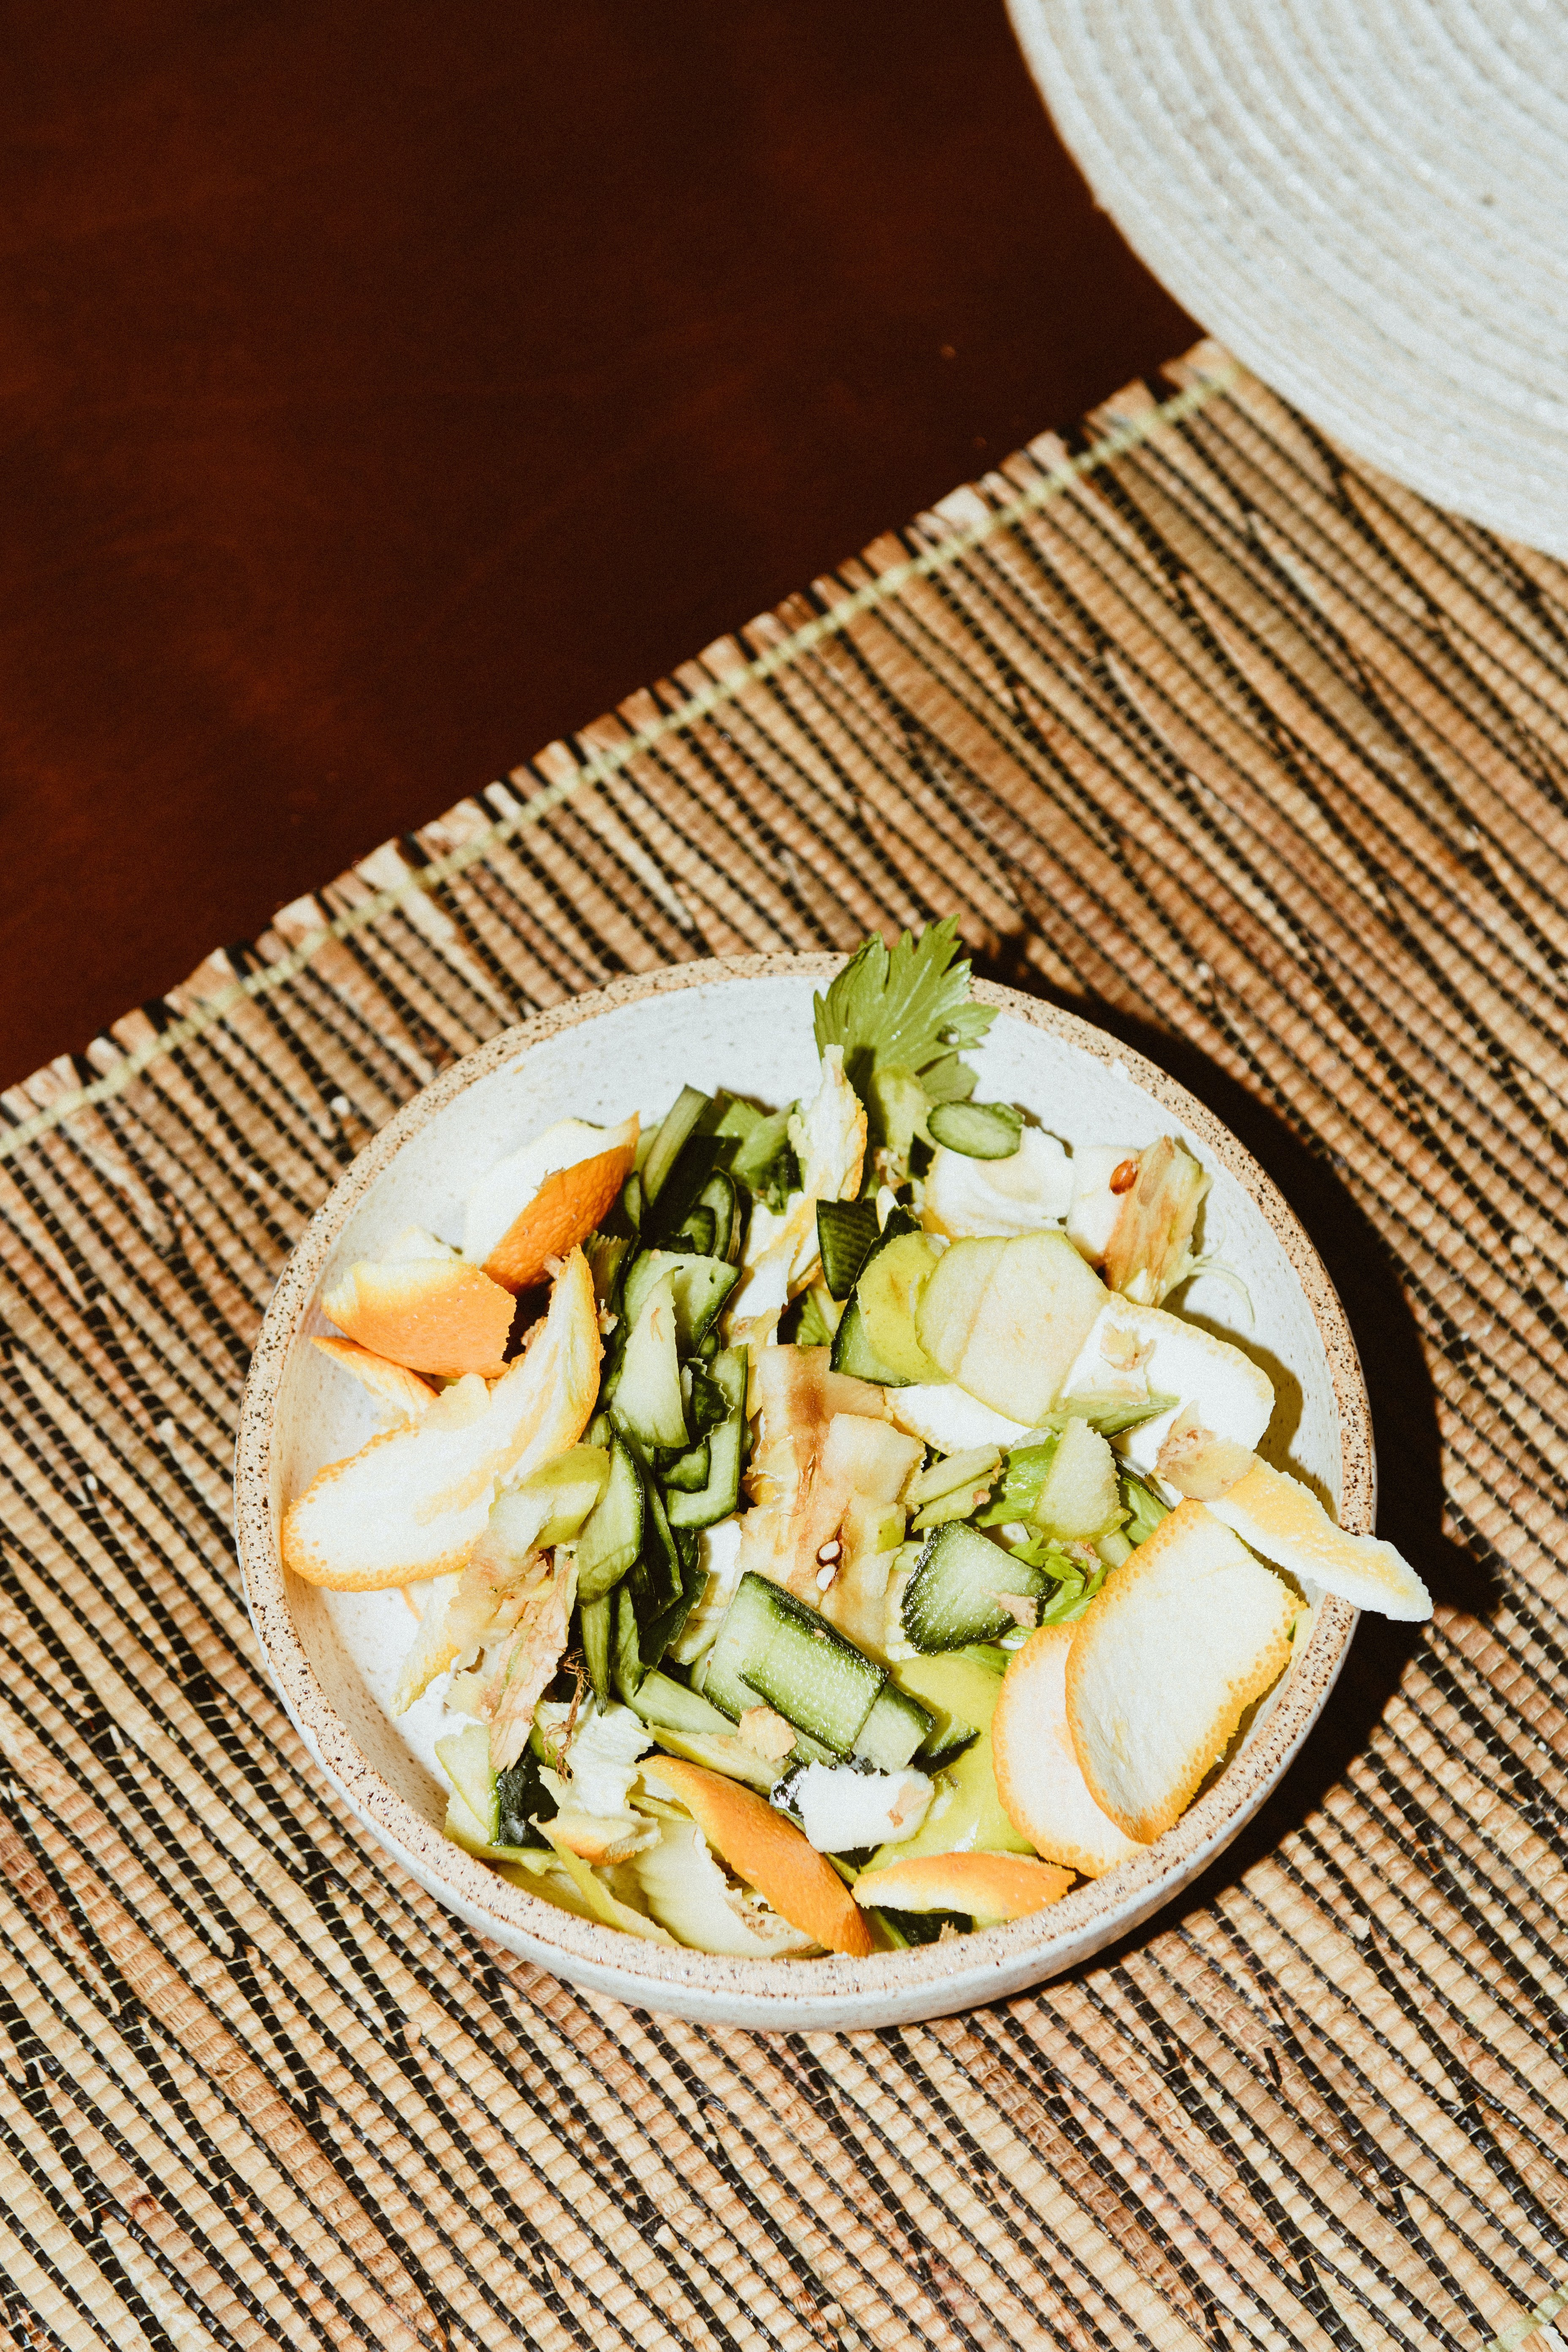 A bowl of food scraps—orange peels, cucumbers, and lettuce—atop a wood placemat.